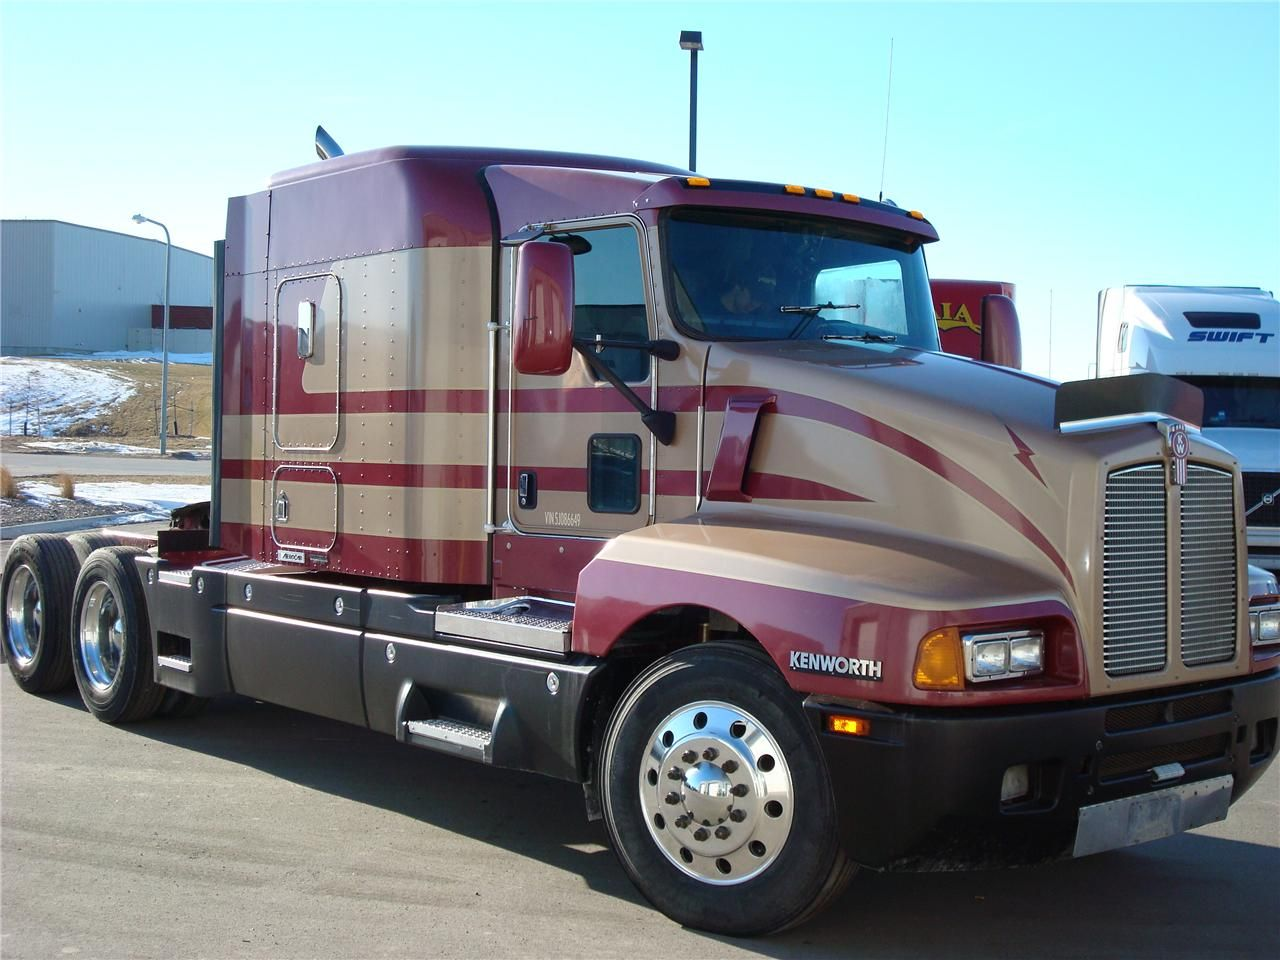 Kenworth t600b photo - 1